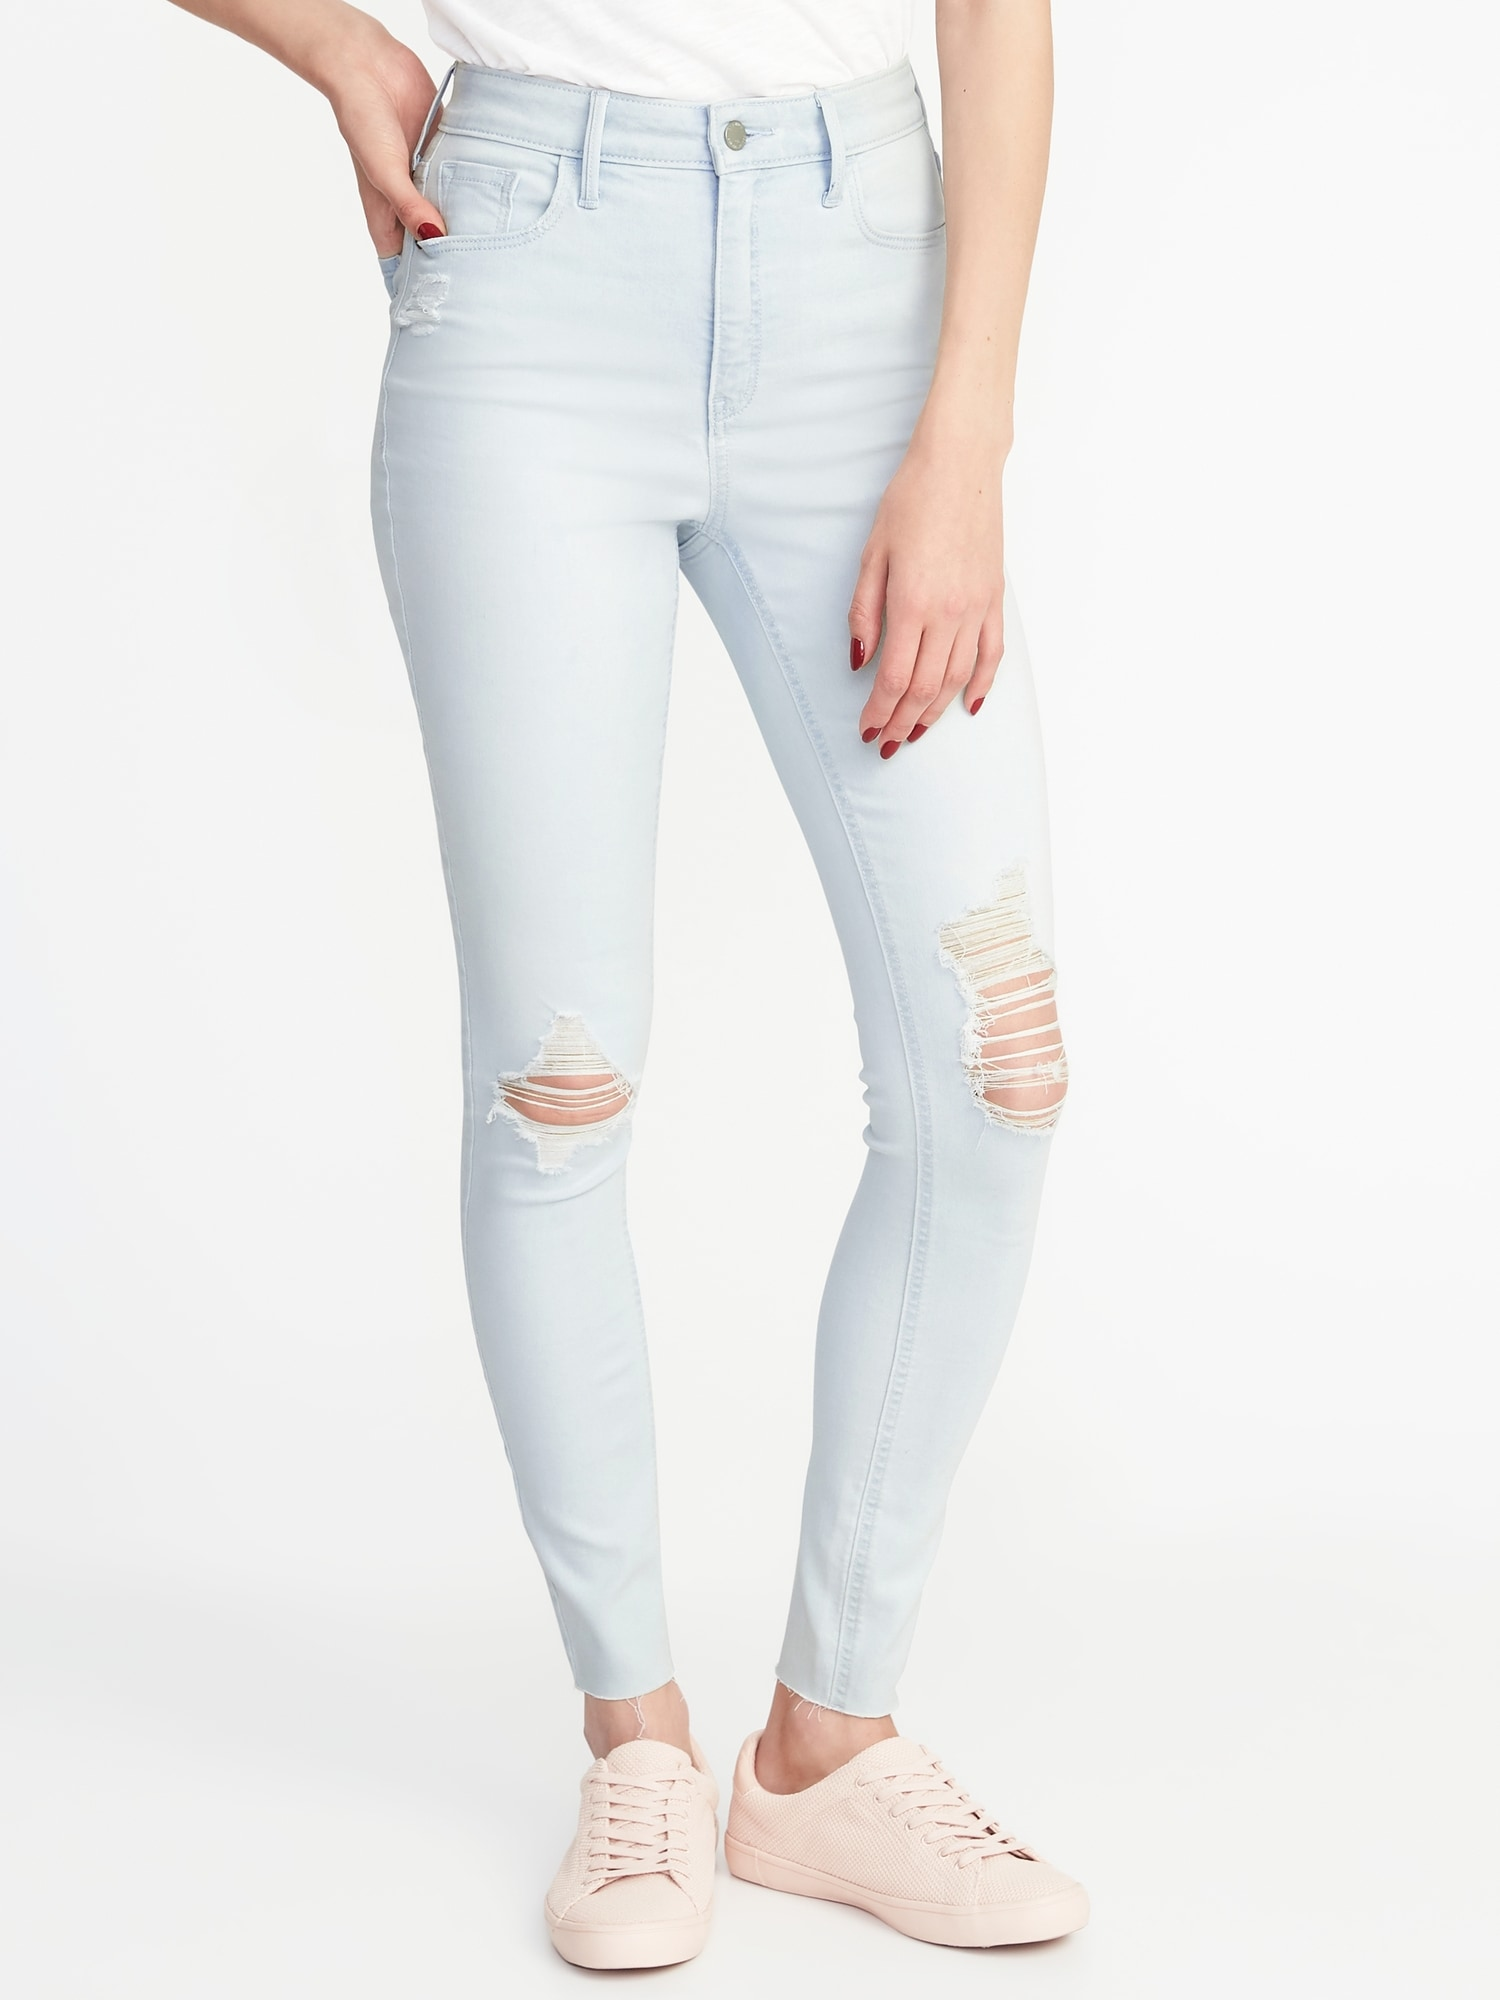 84612ff8e42 High-Rise Secret-Slim Pockets Rockstar Ankle Jeans for Women | Old Navy